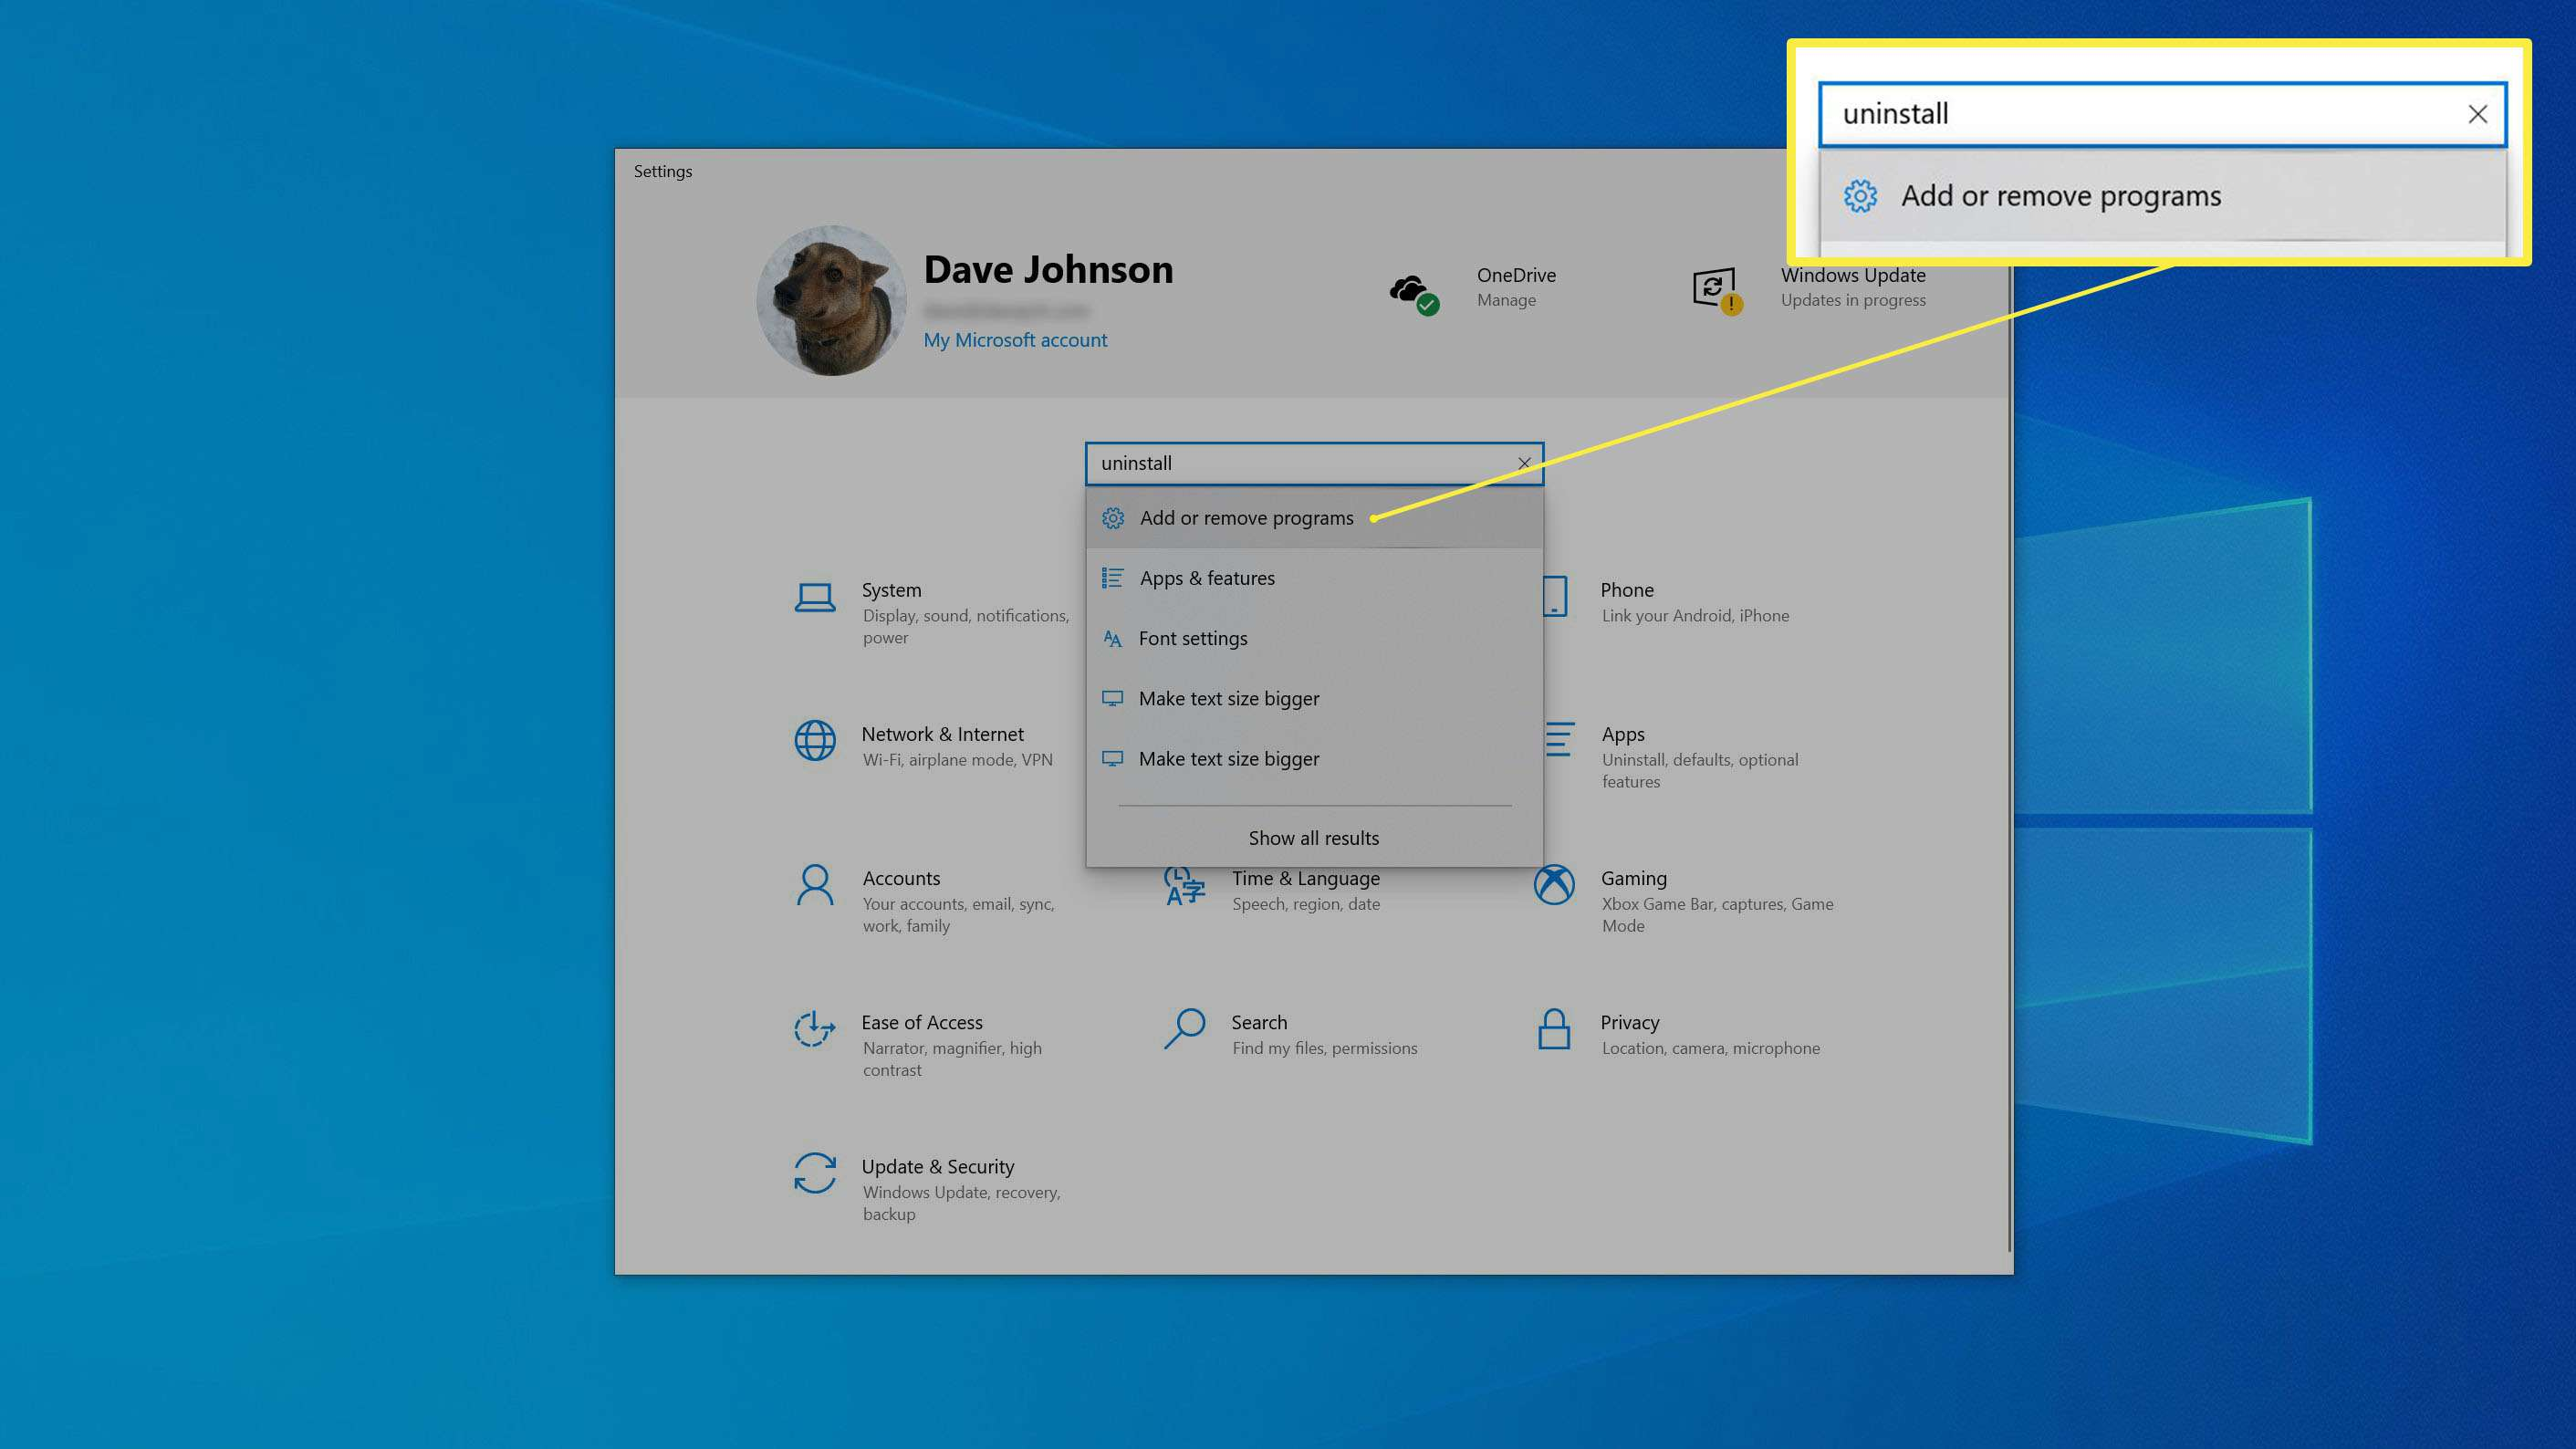 The Settings window with a search taking place.